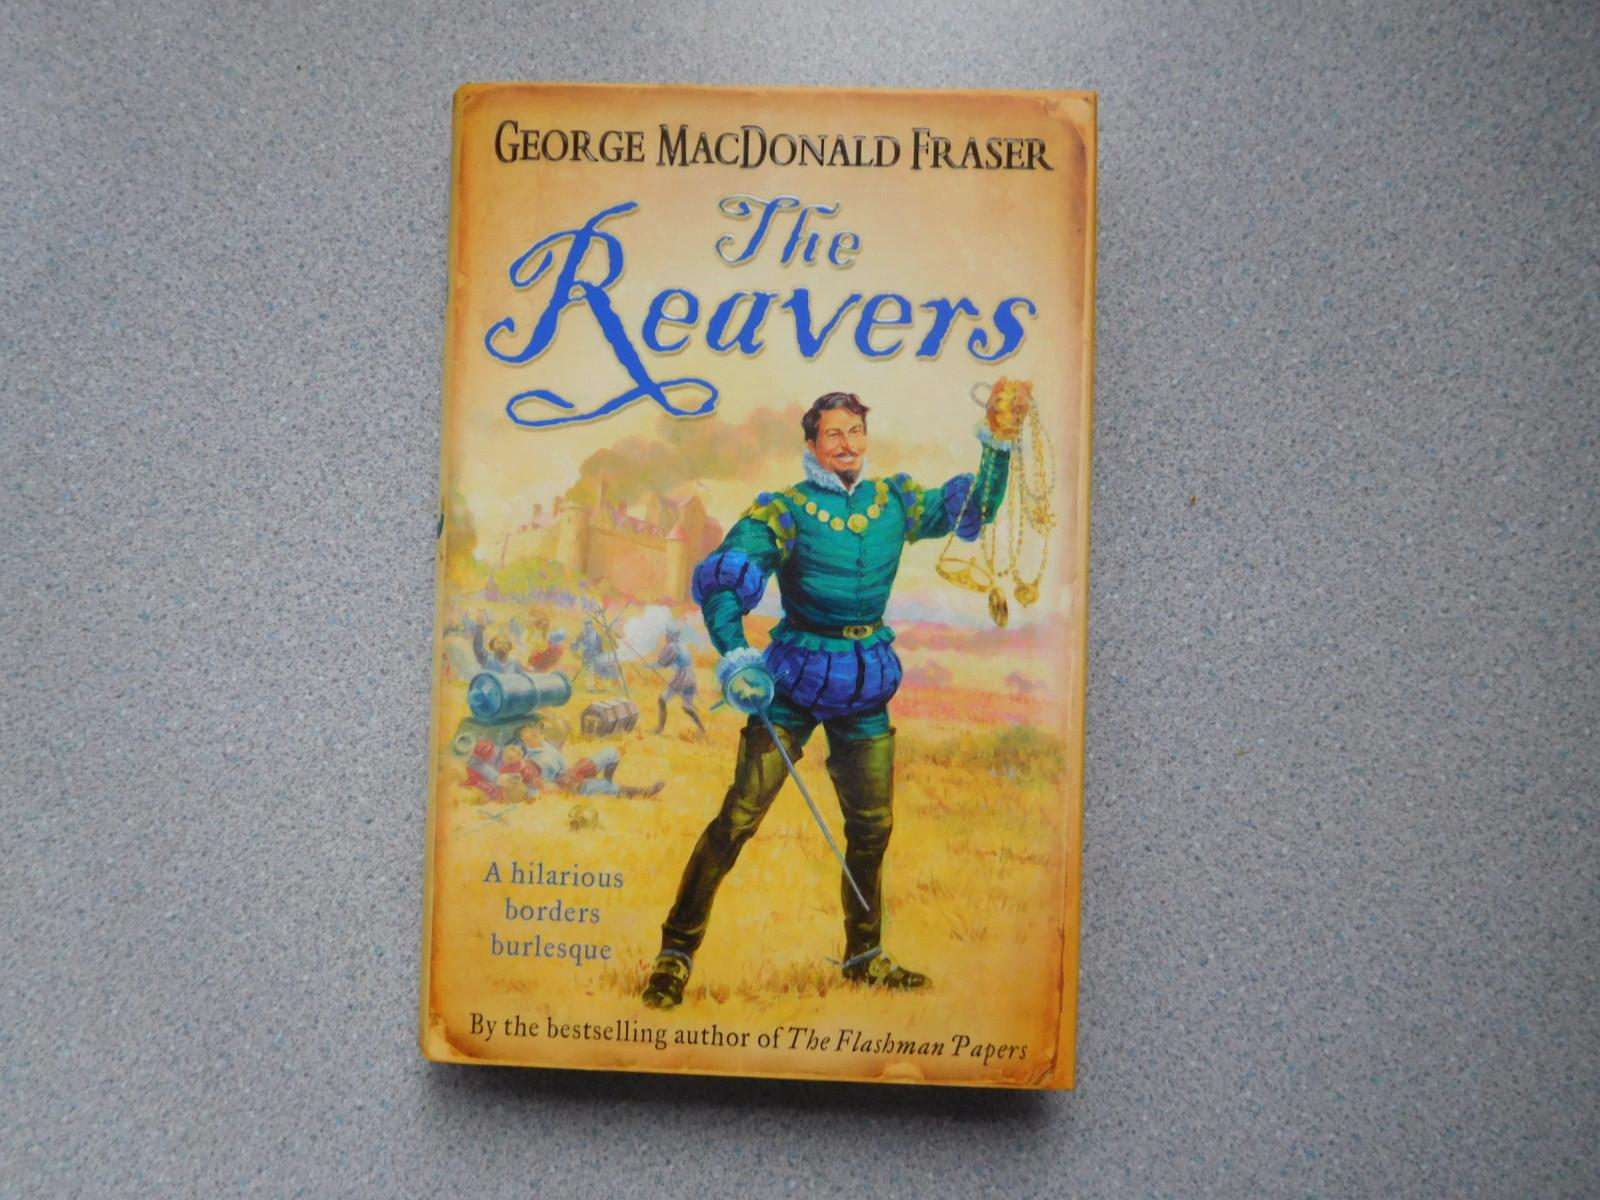 THE_REAVERS_Pristine_Signed_First_EditionPrinting_Fraser_George_Macdonald_Comme_Neuf_Couverture_rigide